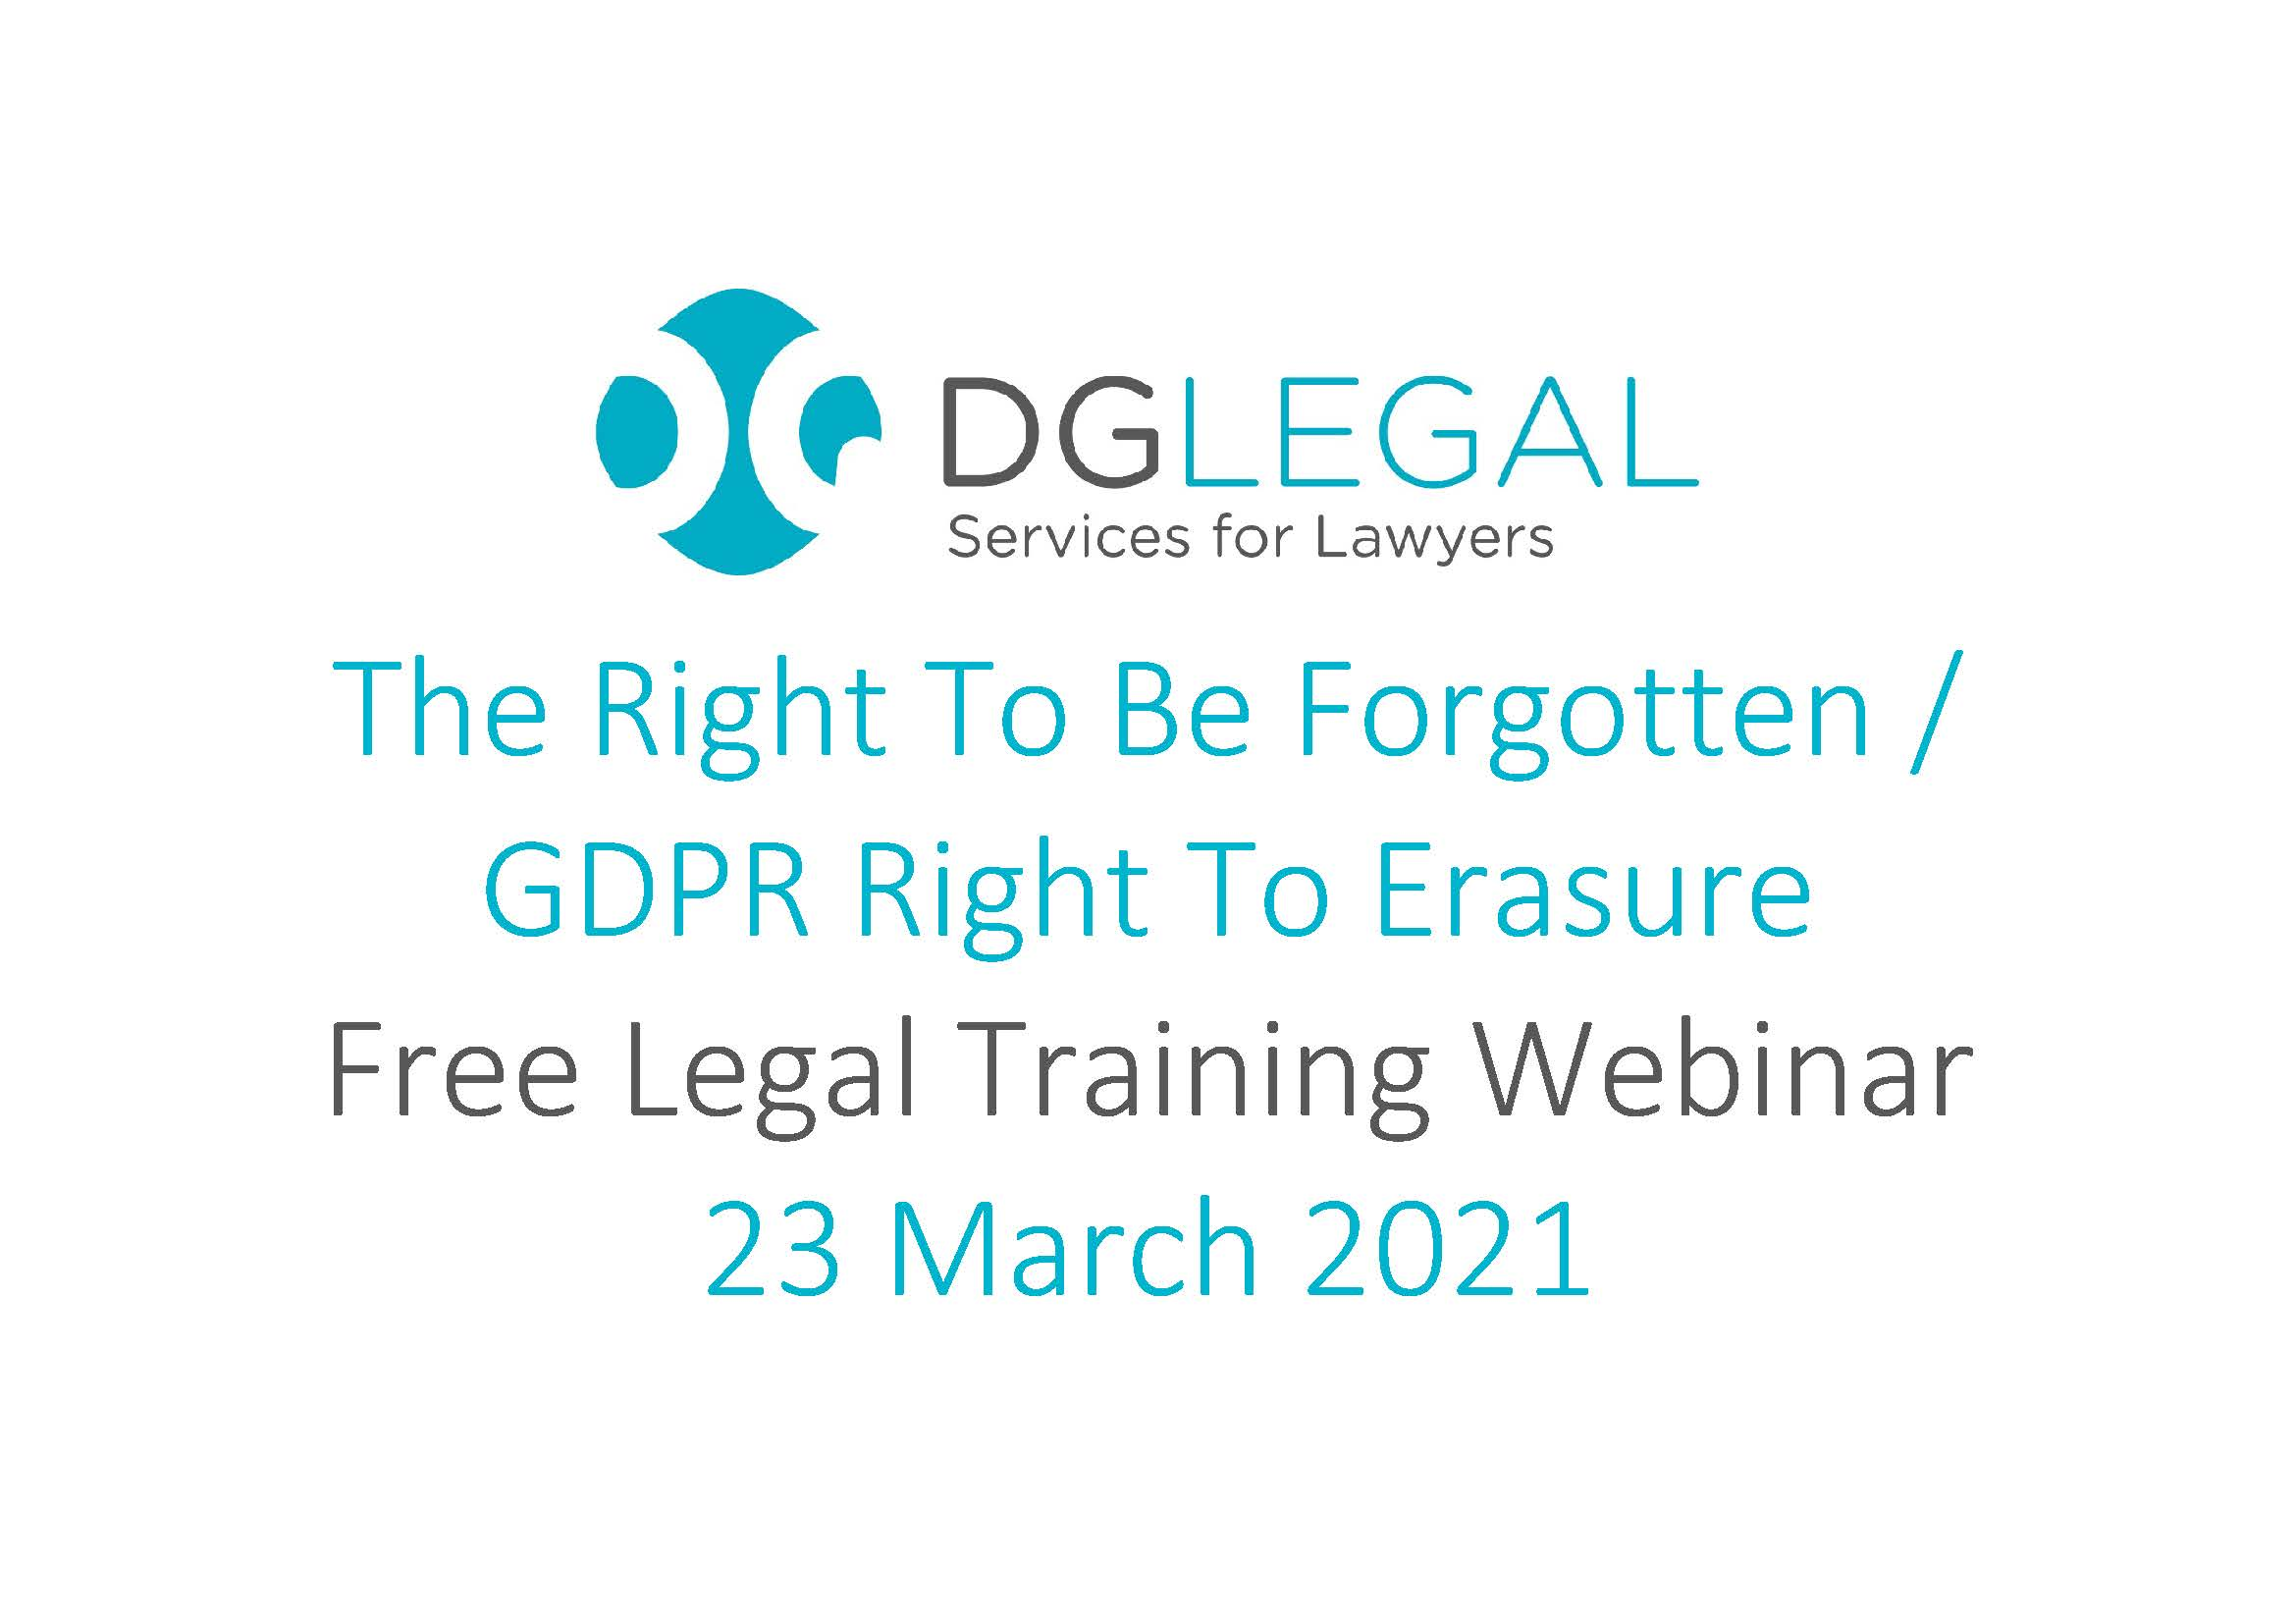 The Right To Be Forgotten - GDPR Right To Erasure